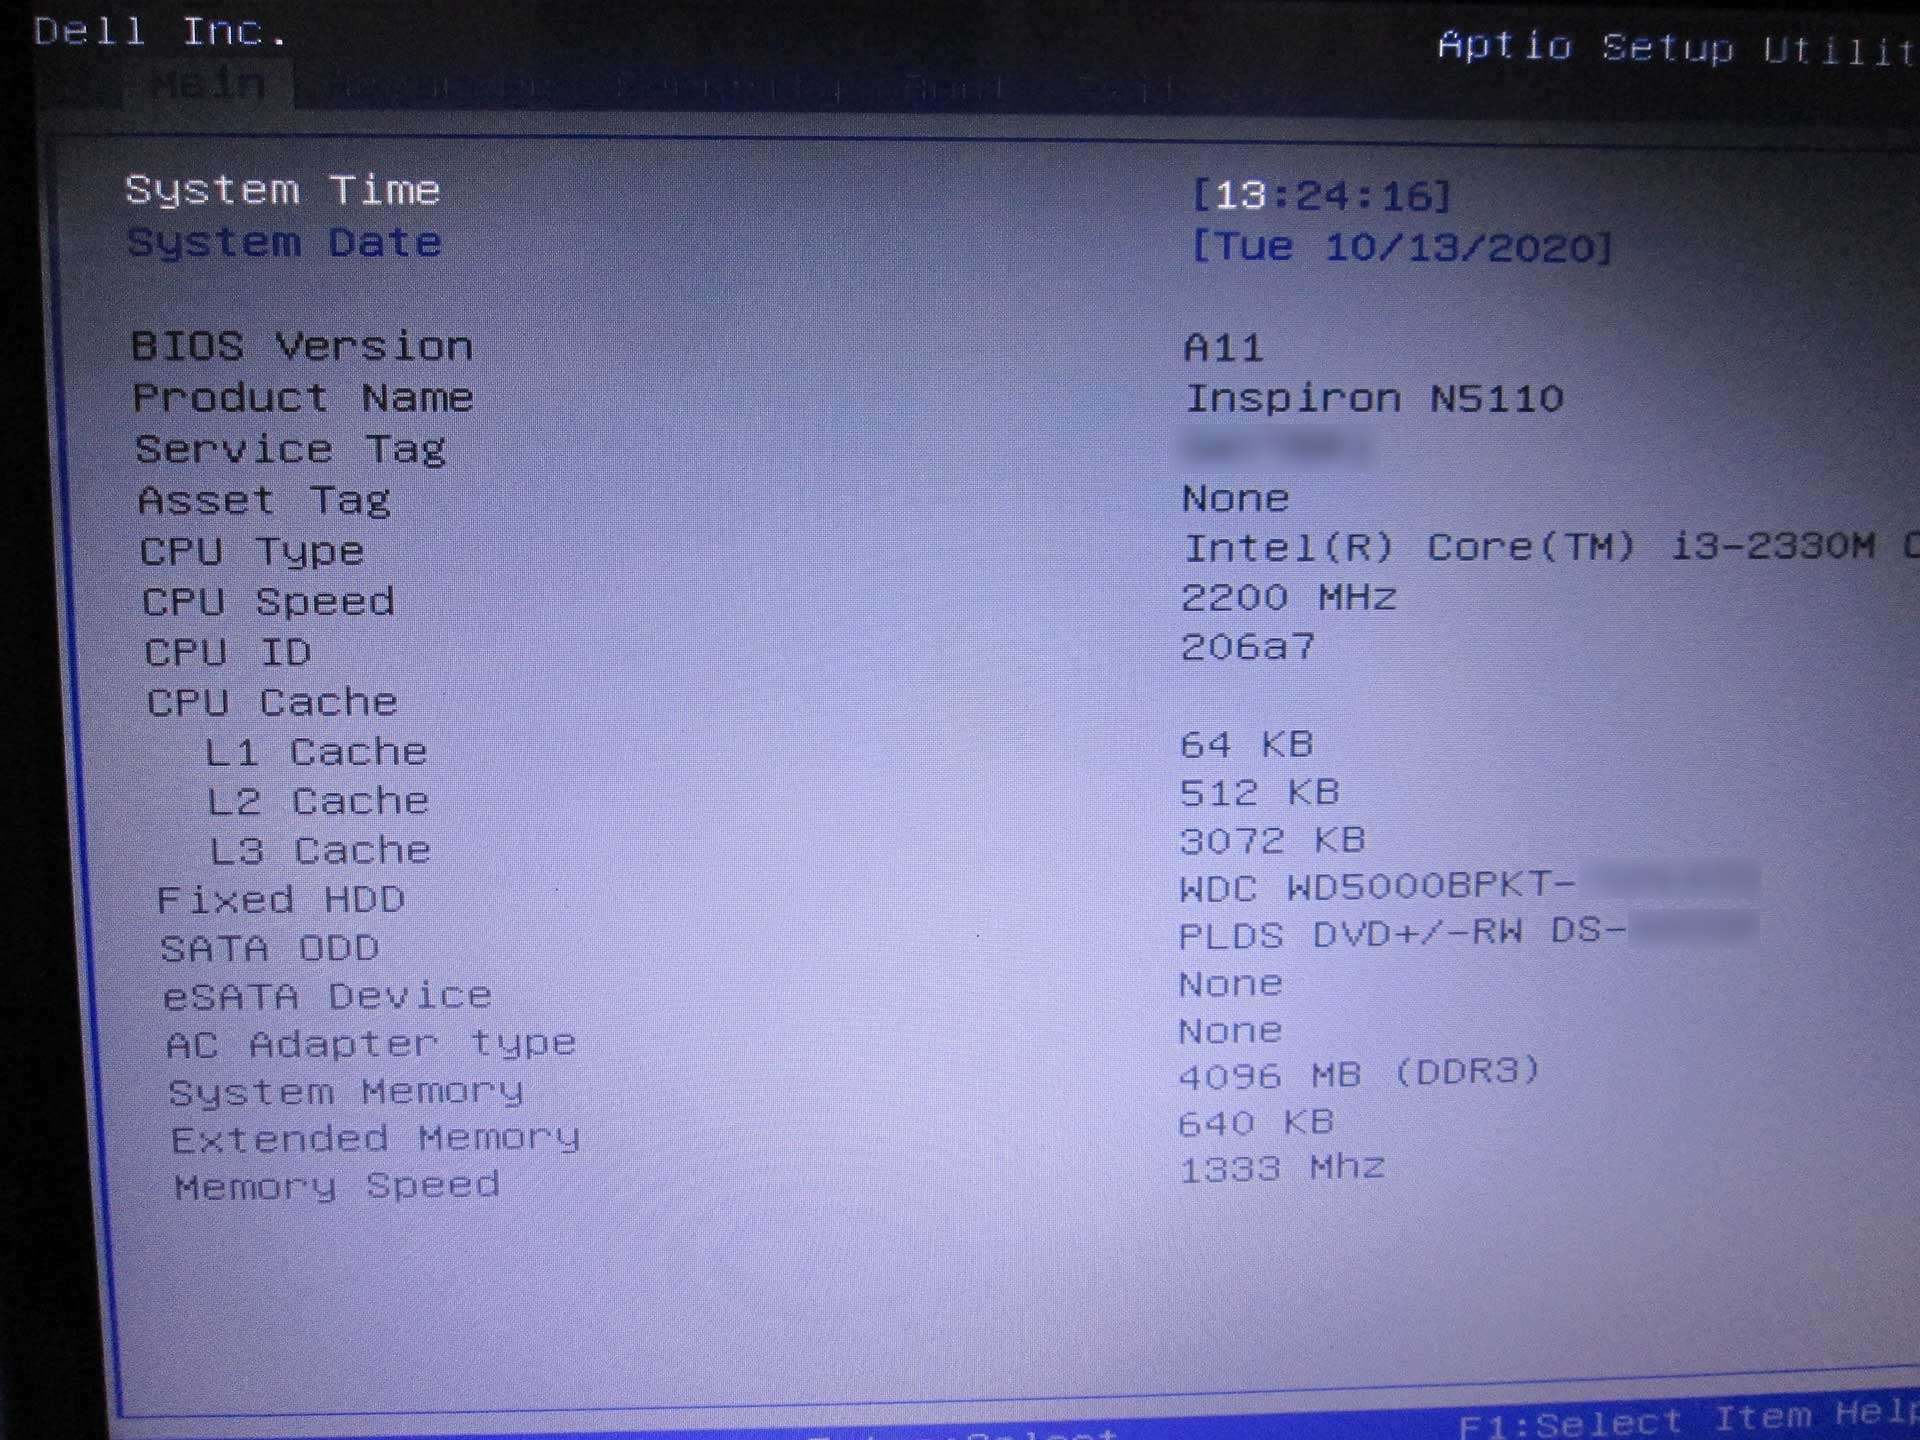 Dell Inspiron N5110 laptop's motherboard running 1600 MHz memory module at 1333 MHz speed